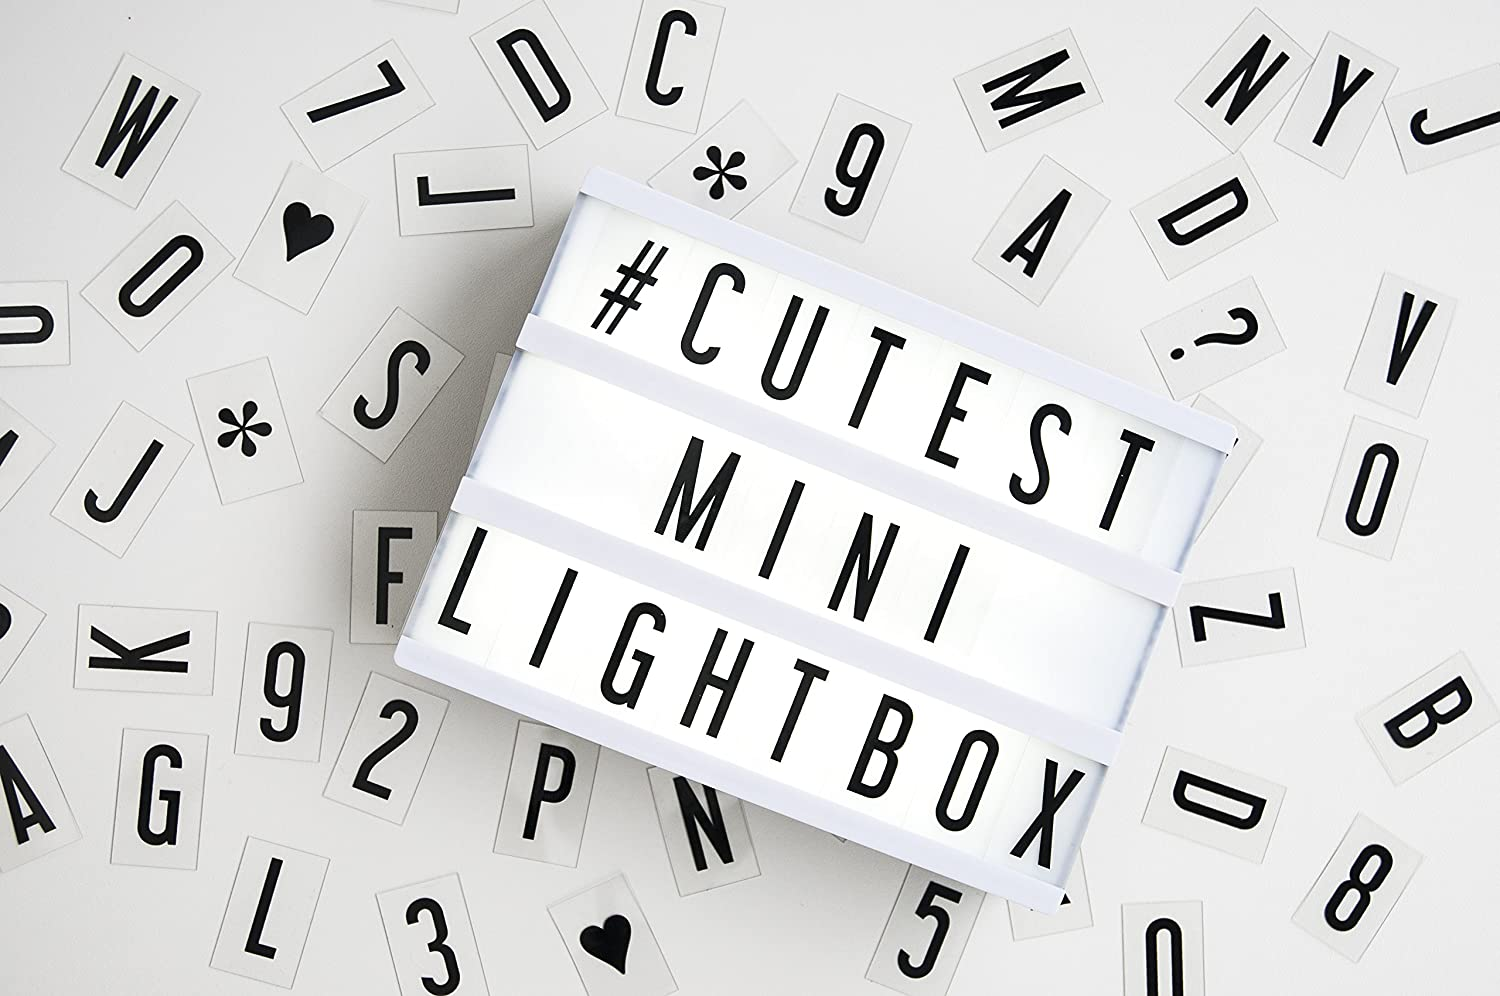 Amazon mini my cinema lightbox led with 100 letters amazon mini my cinema lightbox led with 100 letters numbers characters to create personalized marquee signs includes usb or battery powered buycottarizona Images